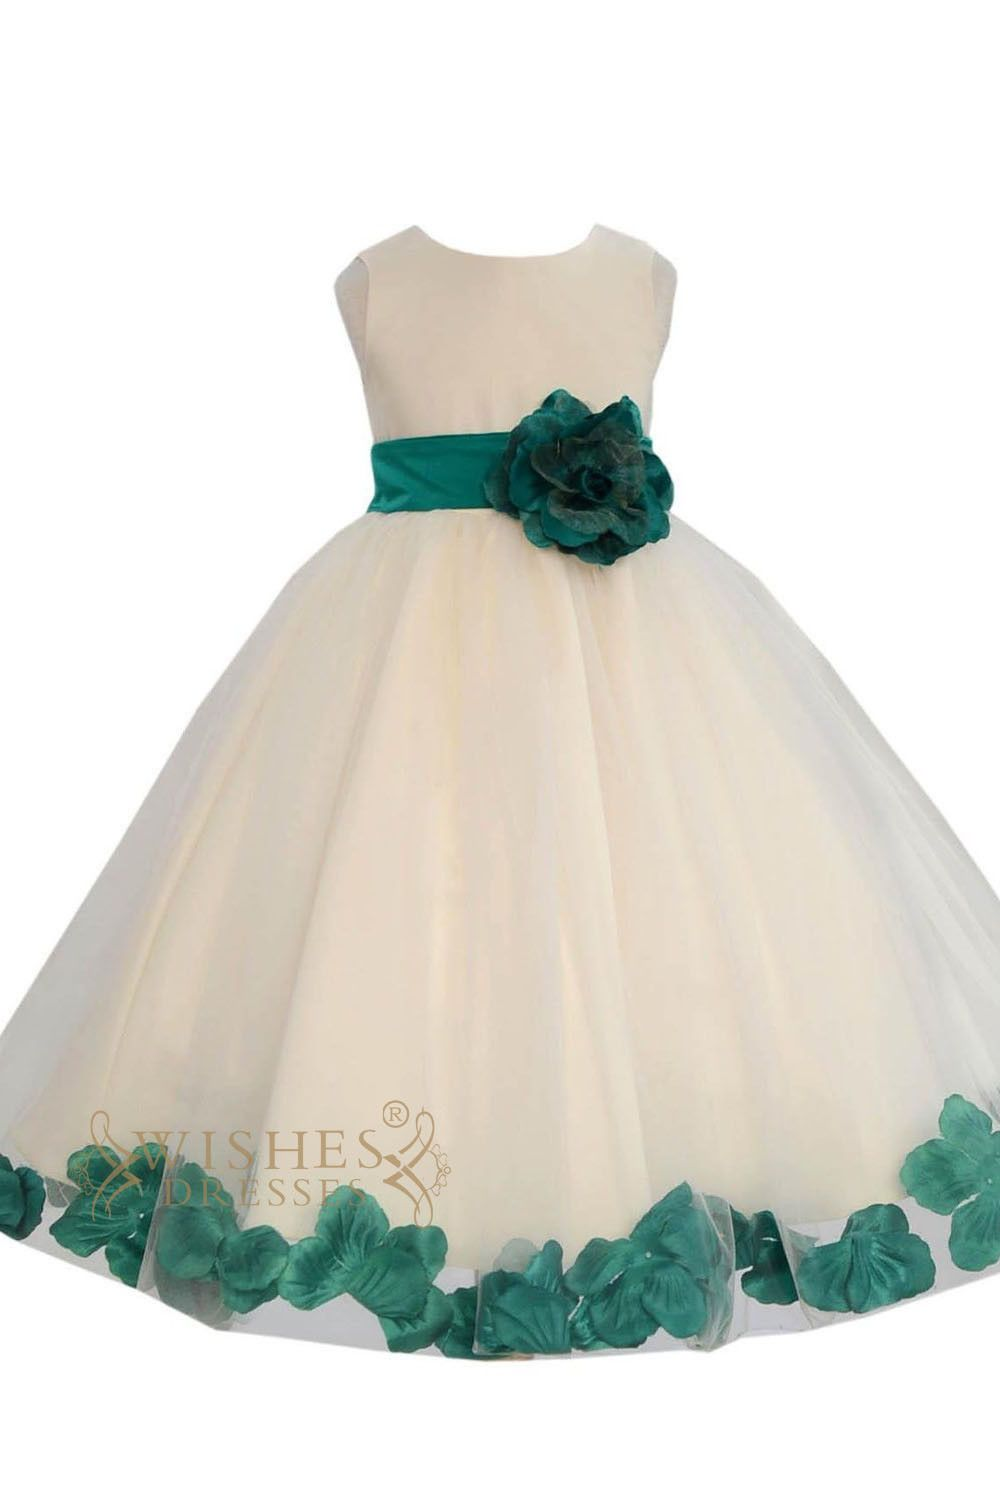 064f9d0165b White satin and organza skirt with different color sash